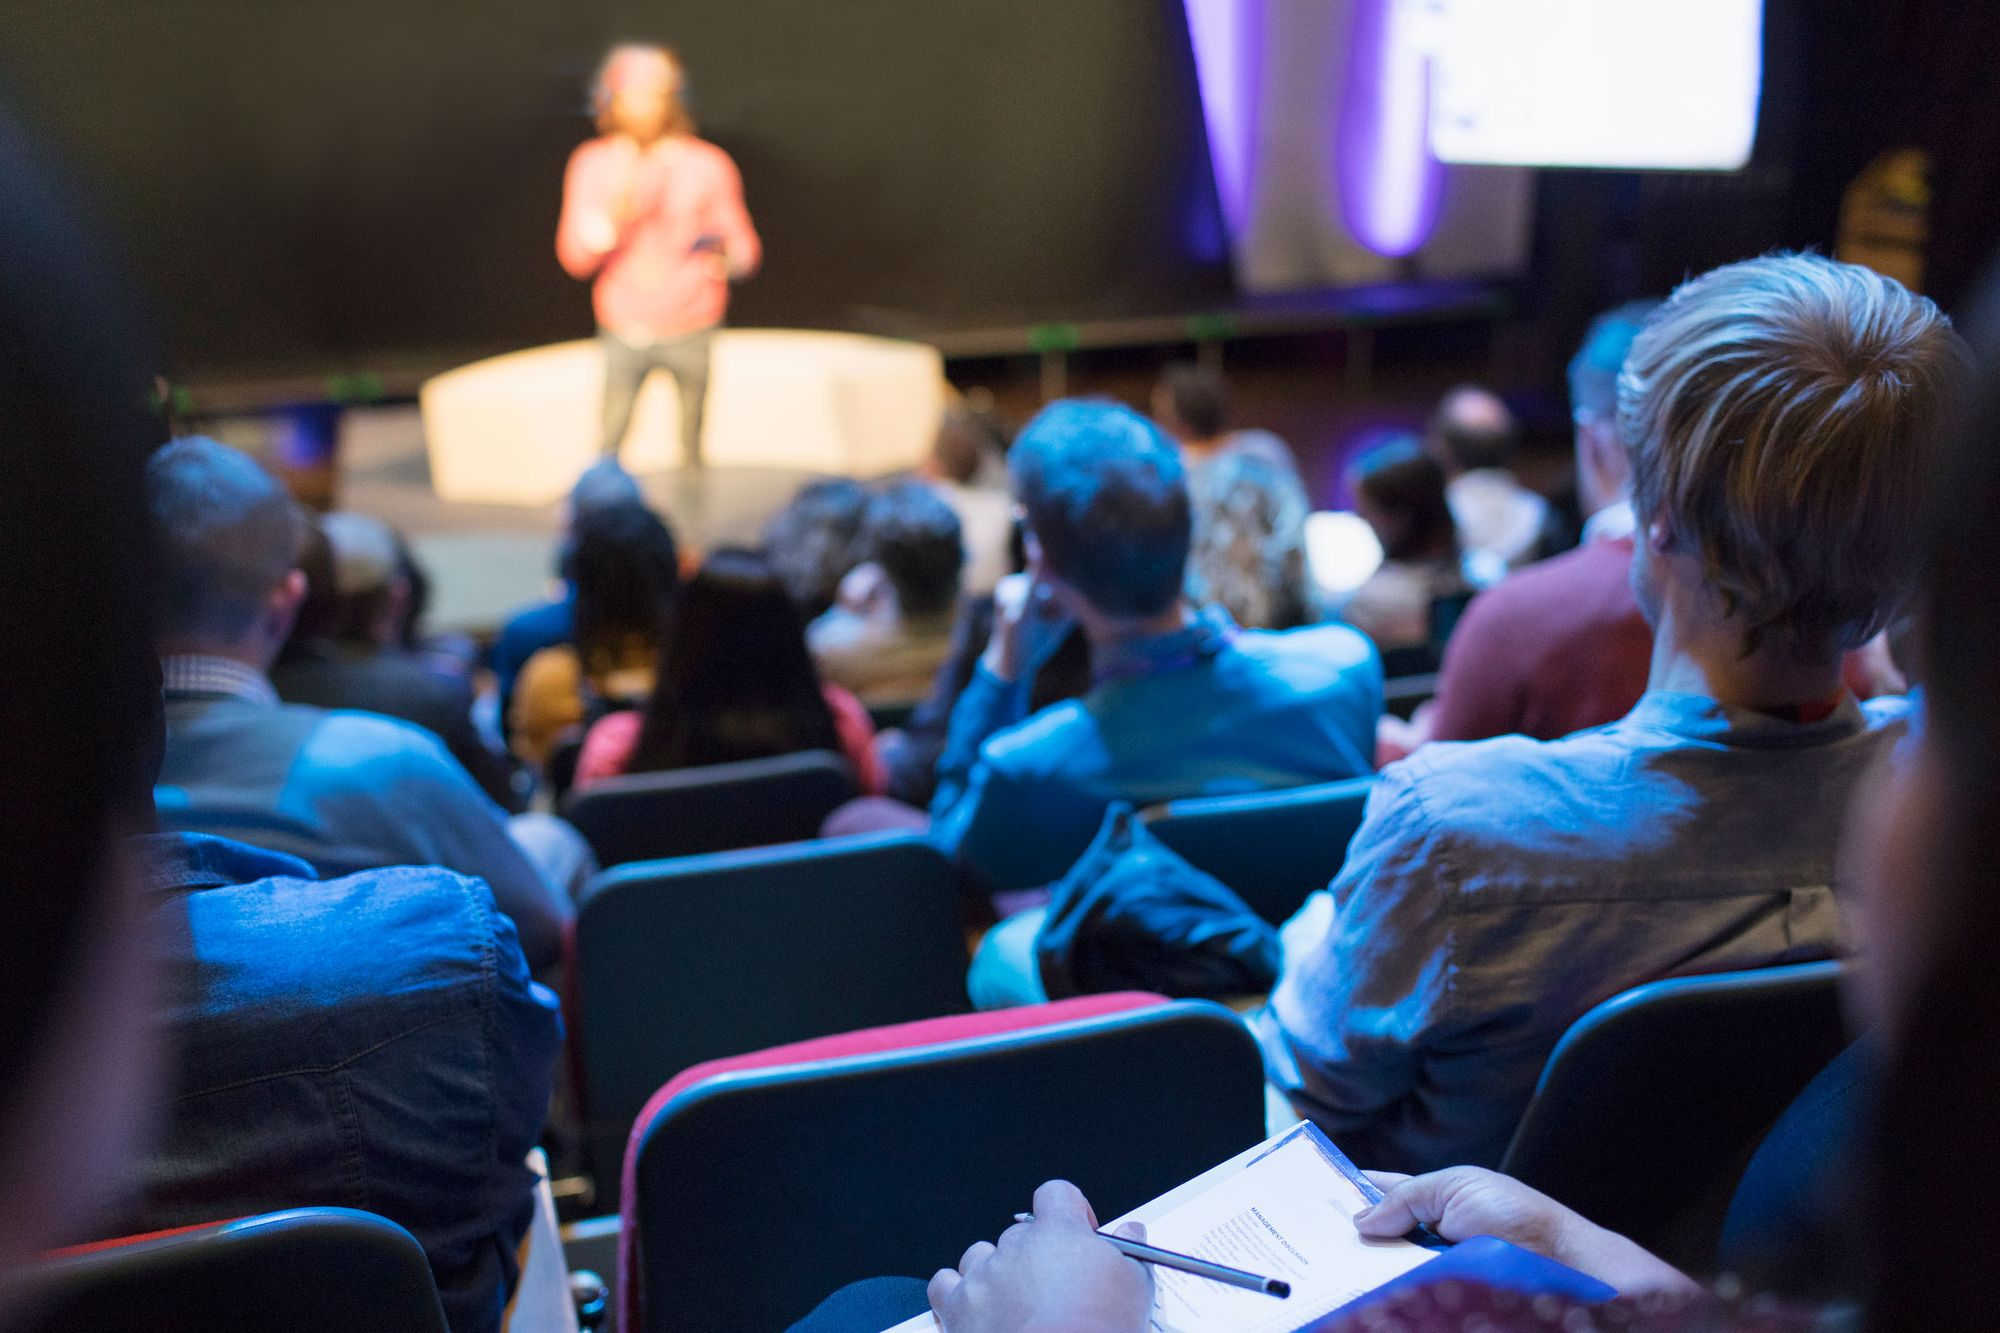 How to Run an Effective Conference: The 7 Steps You Need to Follow